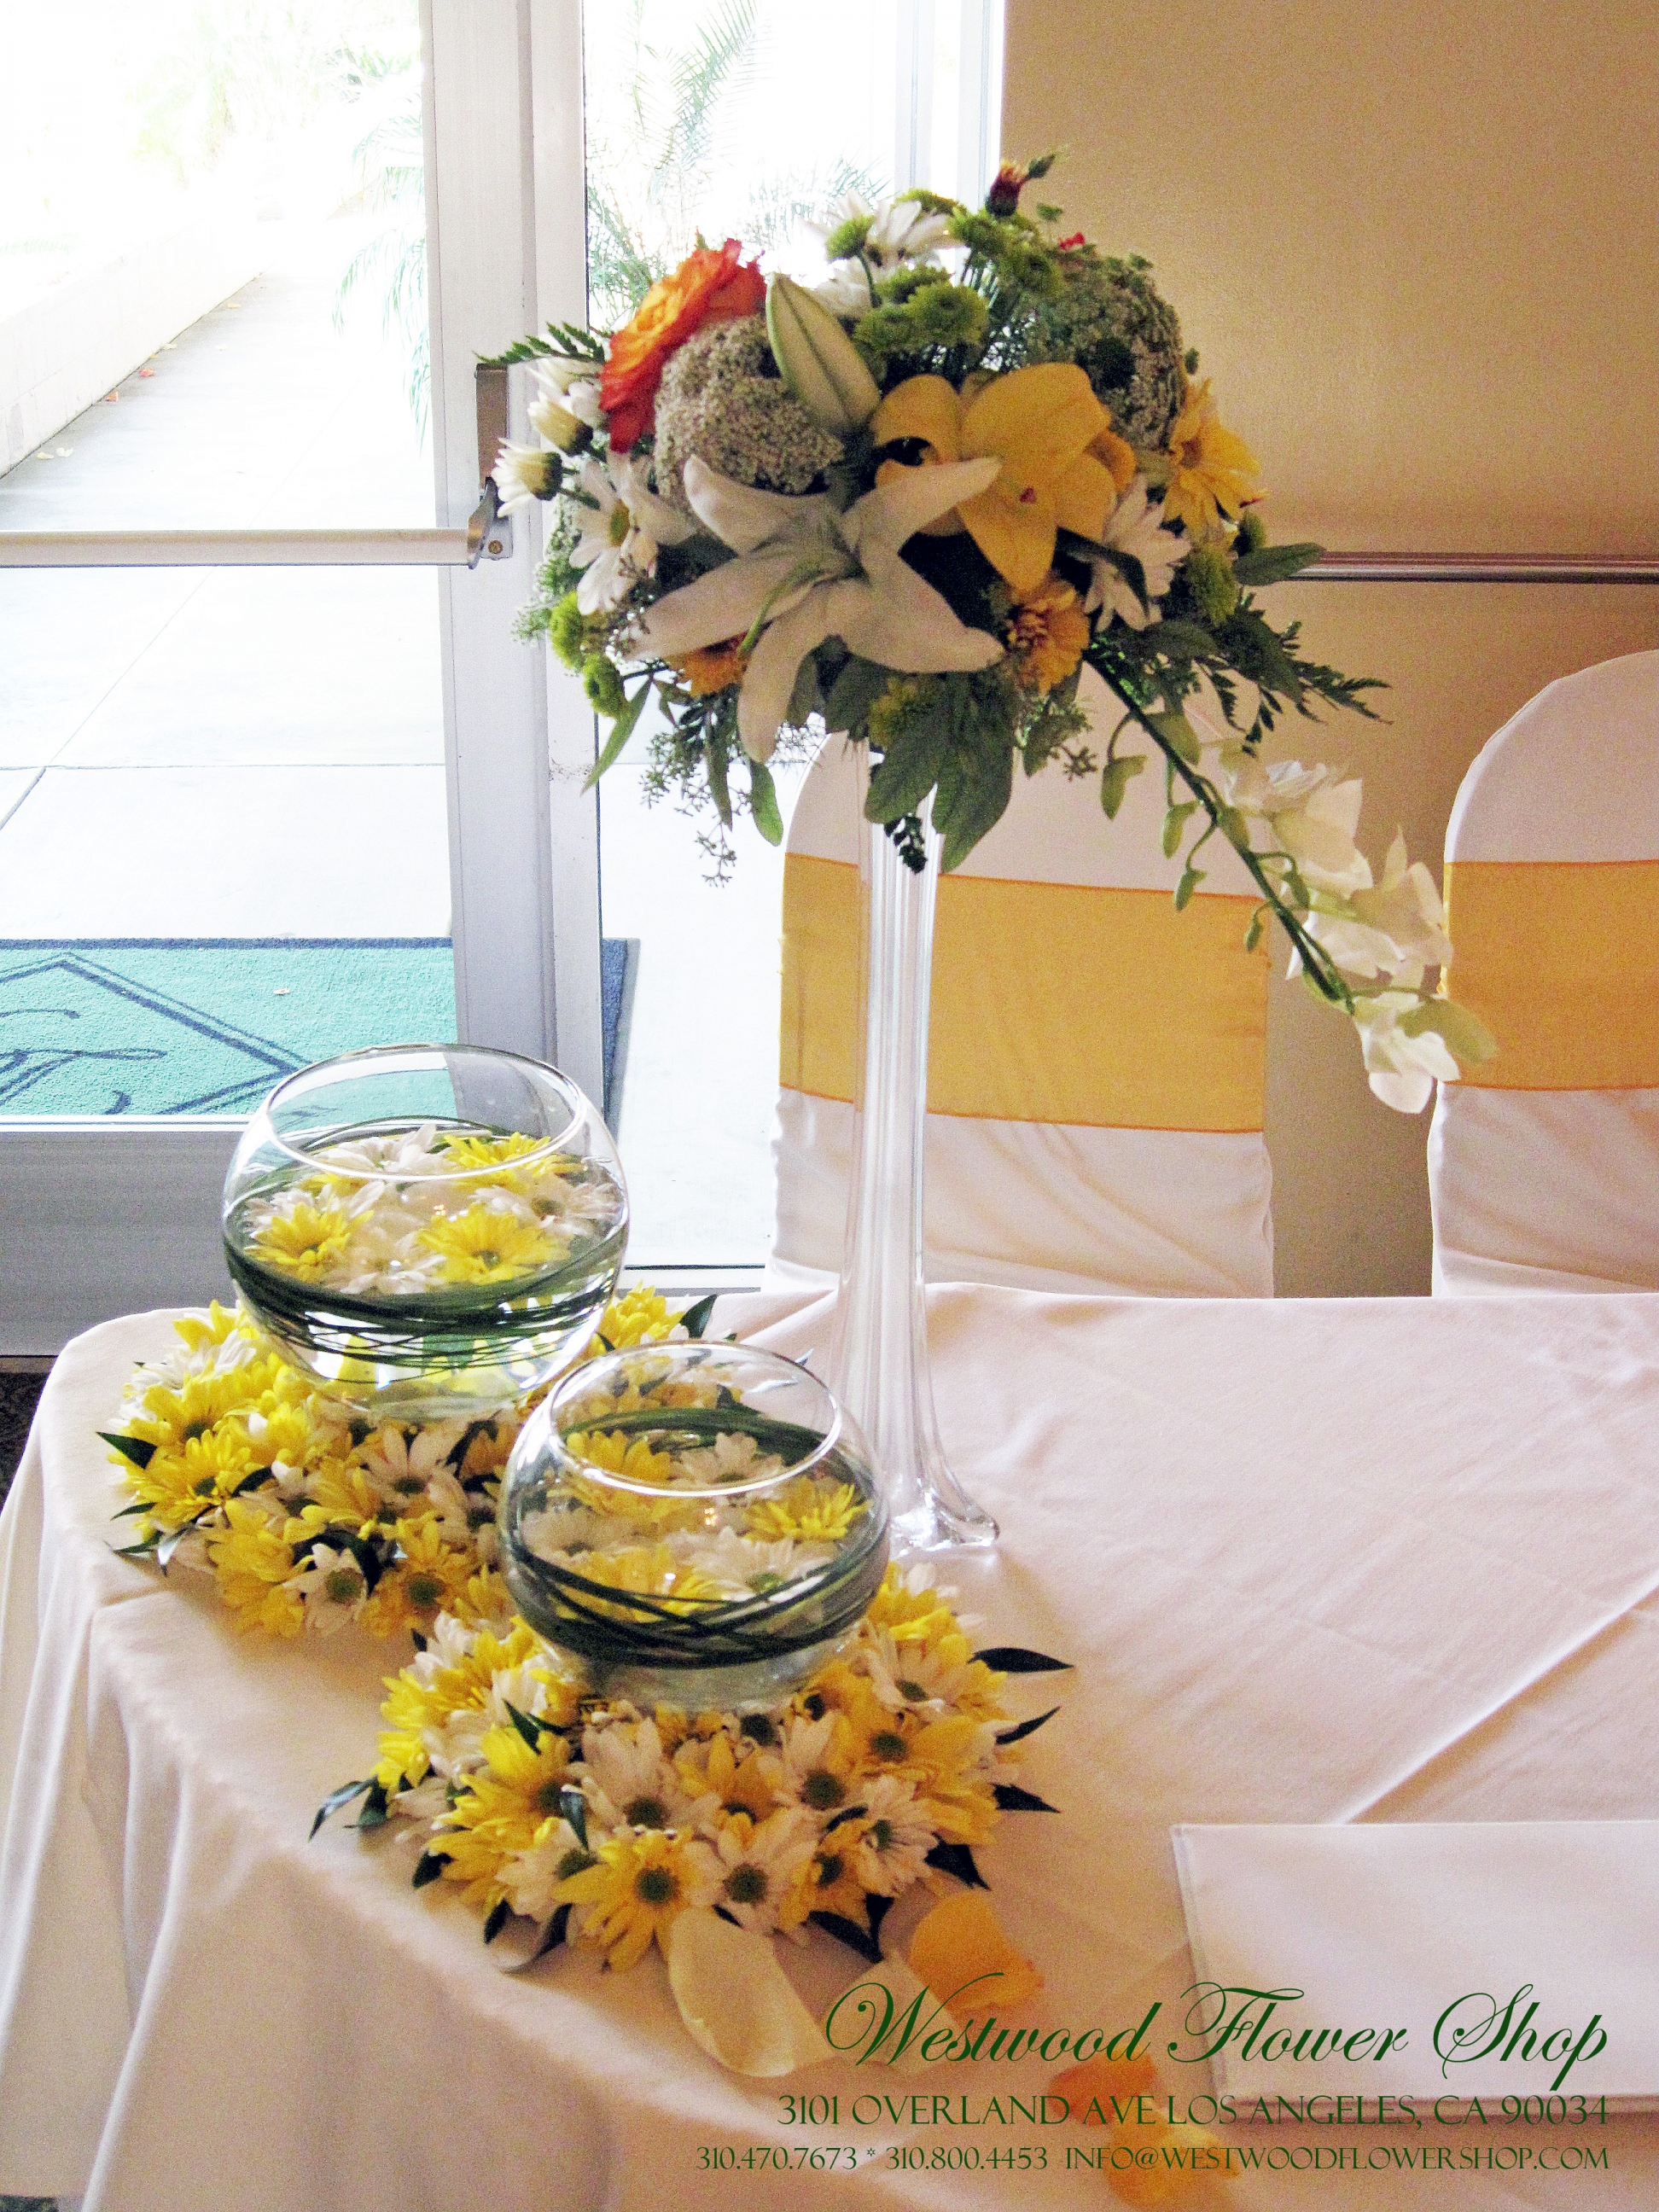 Westwood flower shop your event specialist in los angeles we make each and every year memorable as we create lavish table centerpieces filled with celebrants favorite flowers and themed color junglespirit Image collections